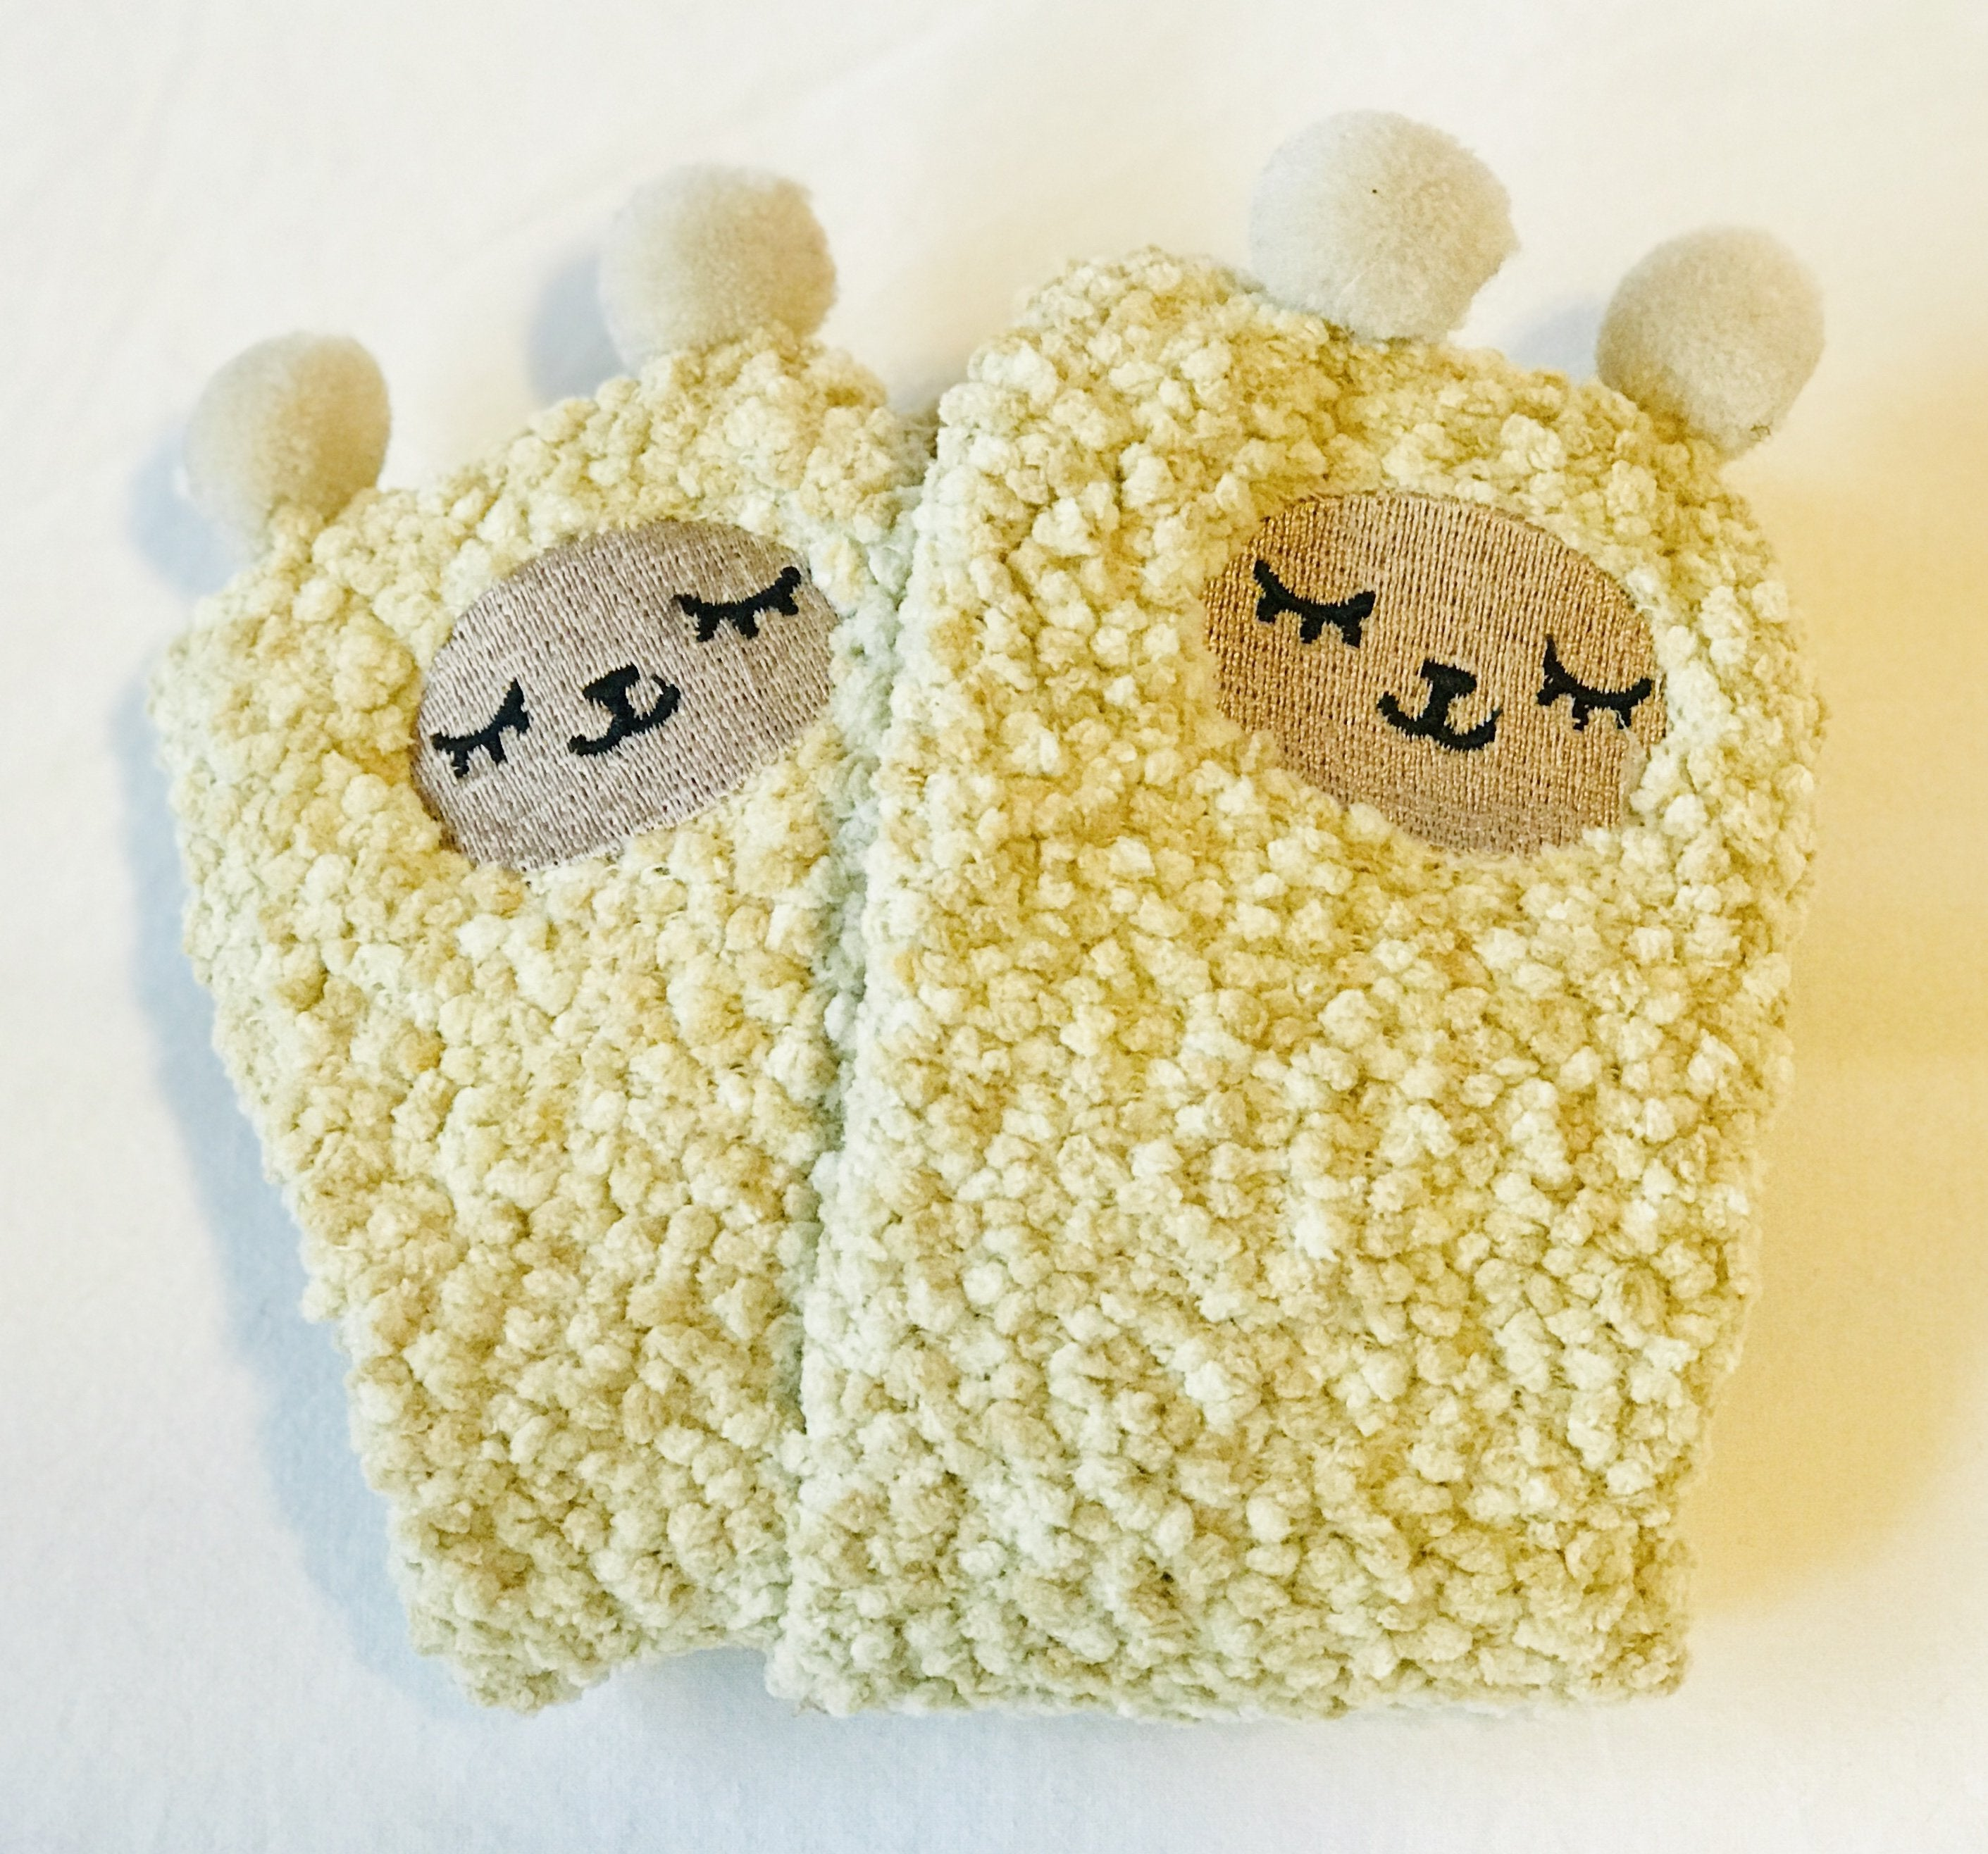 Comfy Sheep Socks in a Box